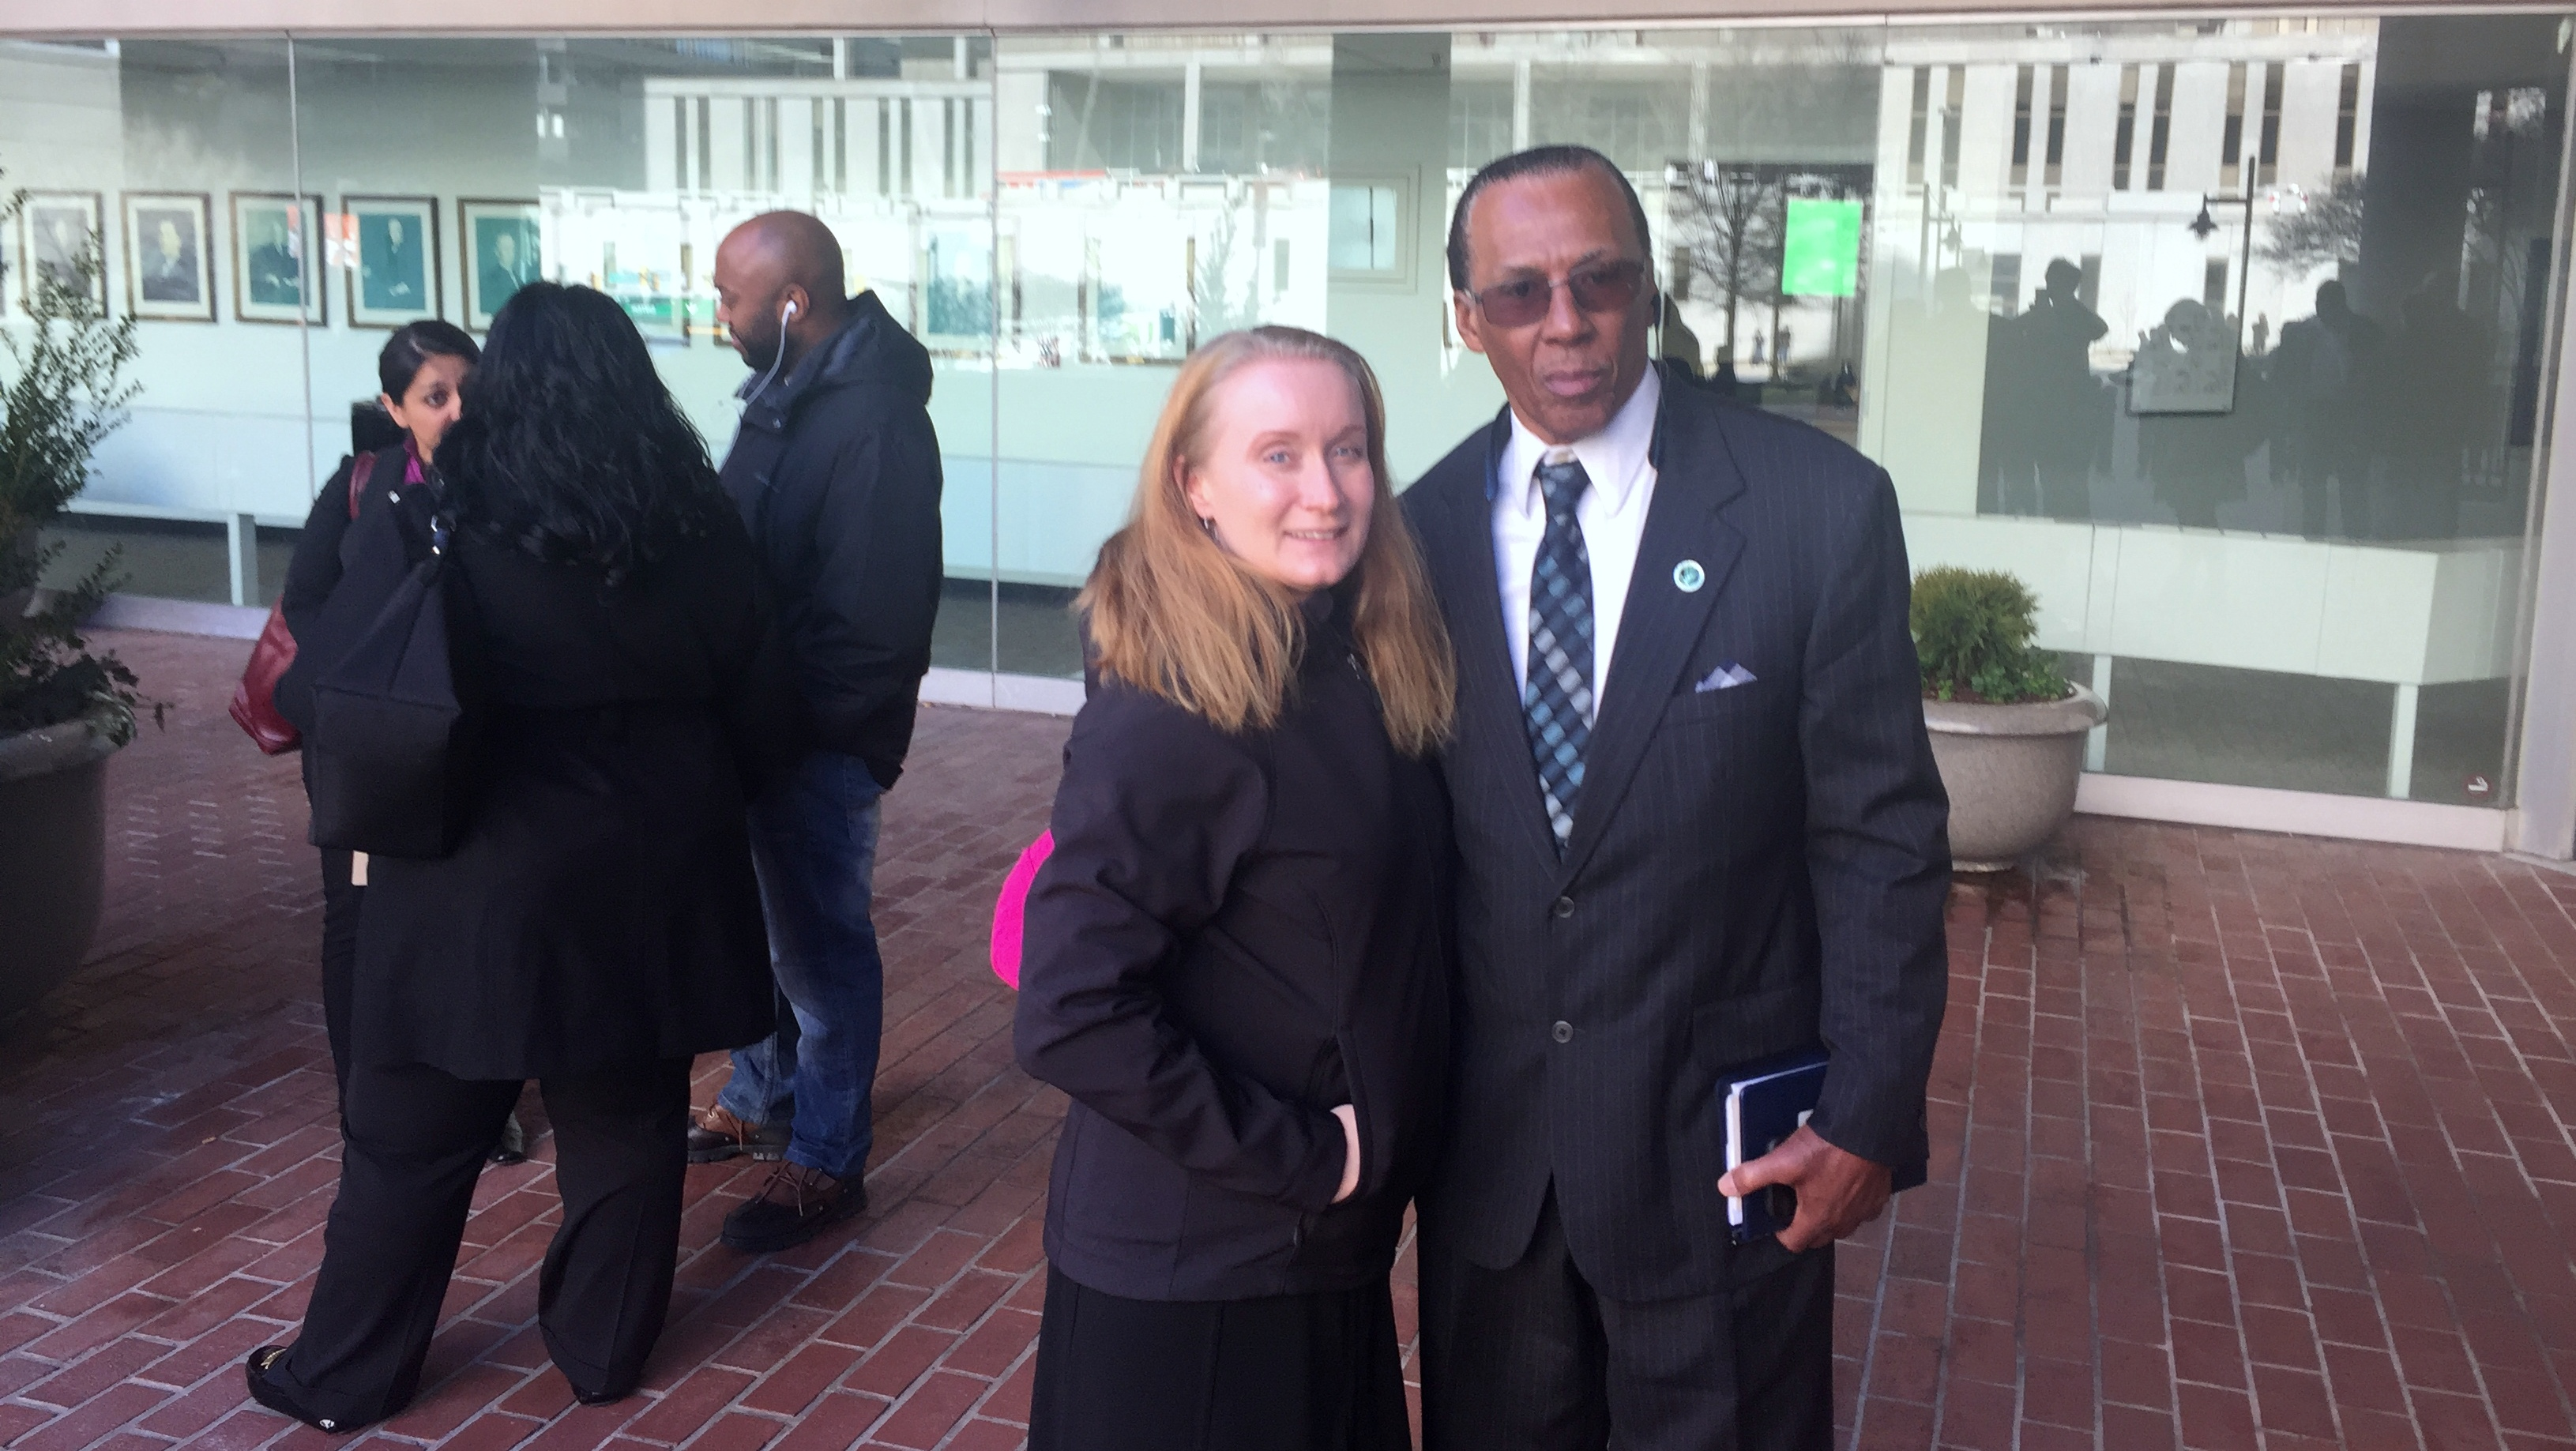 Walter Lomax, executive director of the Maryland Restorative Justice Initiative, with the ACLU's Meredith Curtis, outside federal court in Baltimore. (Louie Krauss)